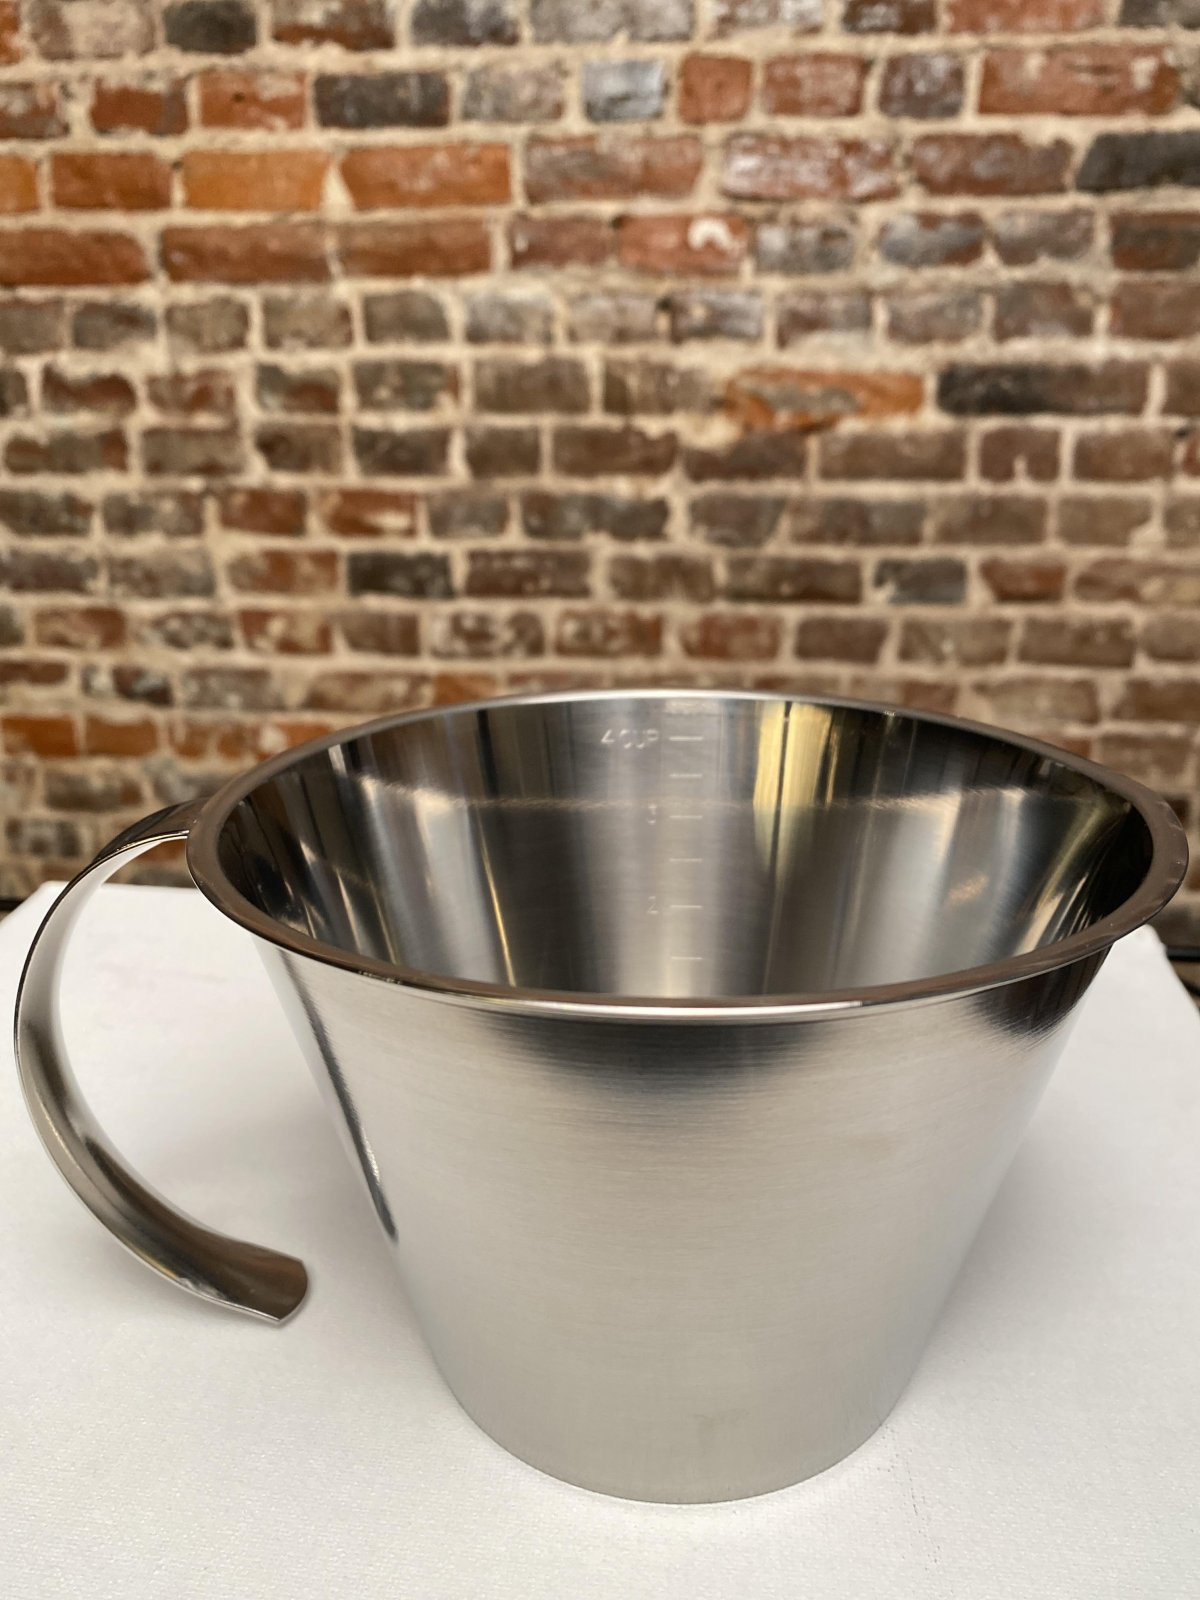 4 Cup Stainless Steel Measuring Cup